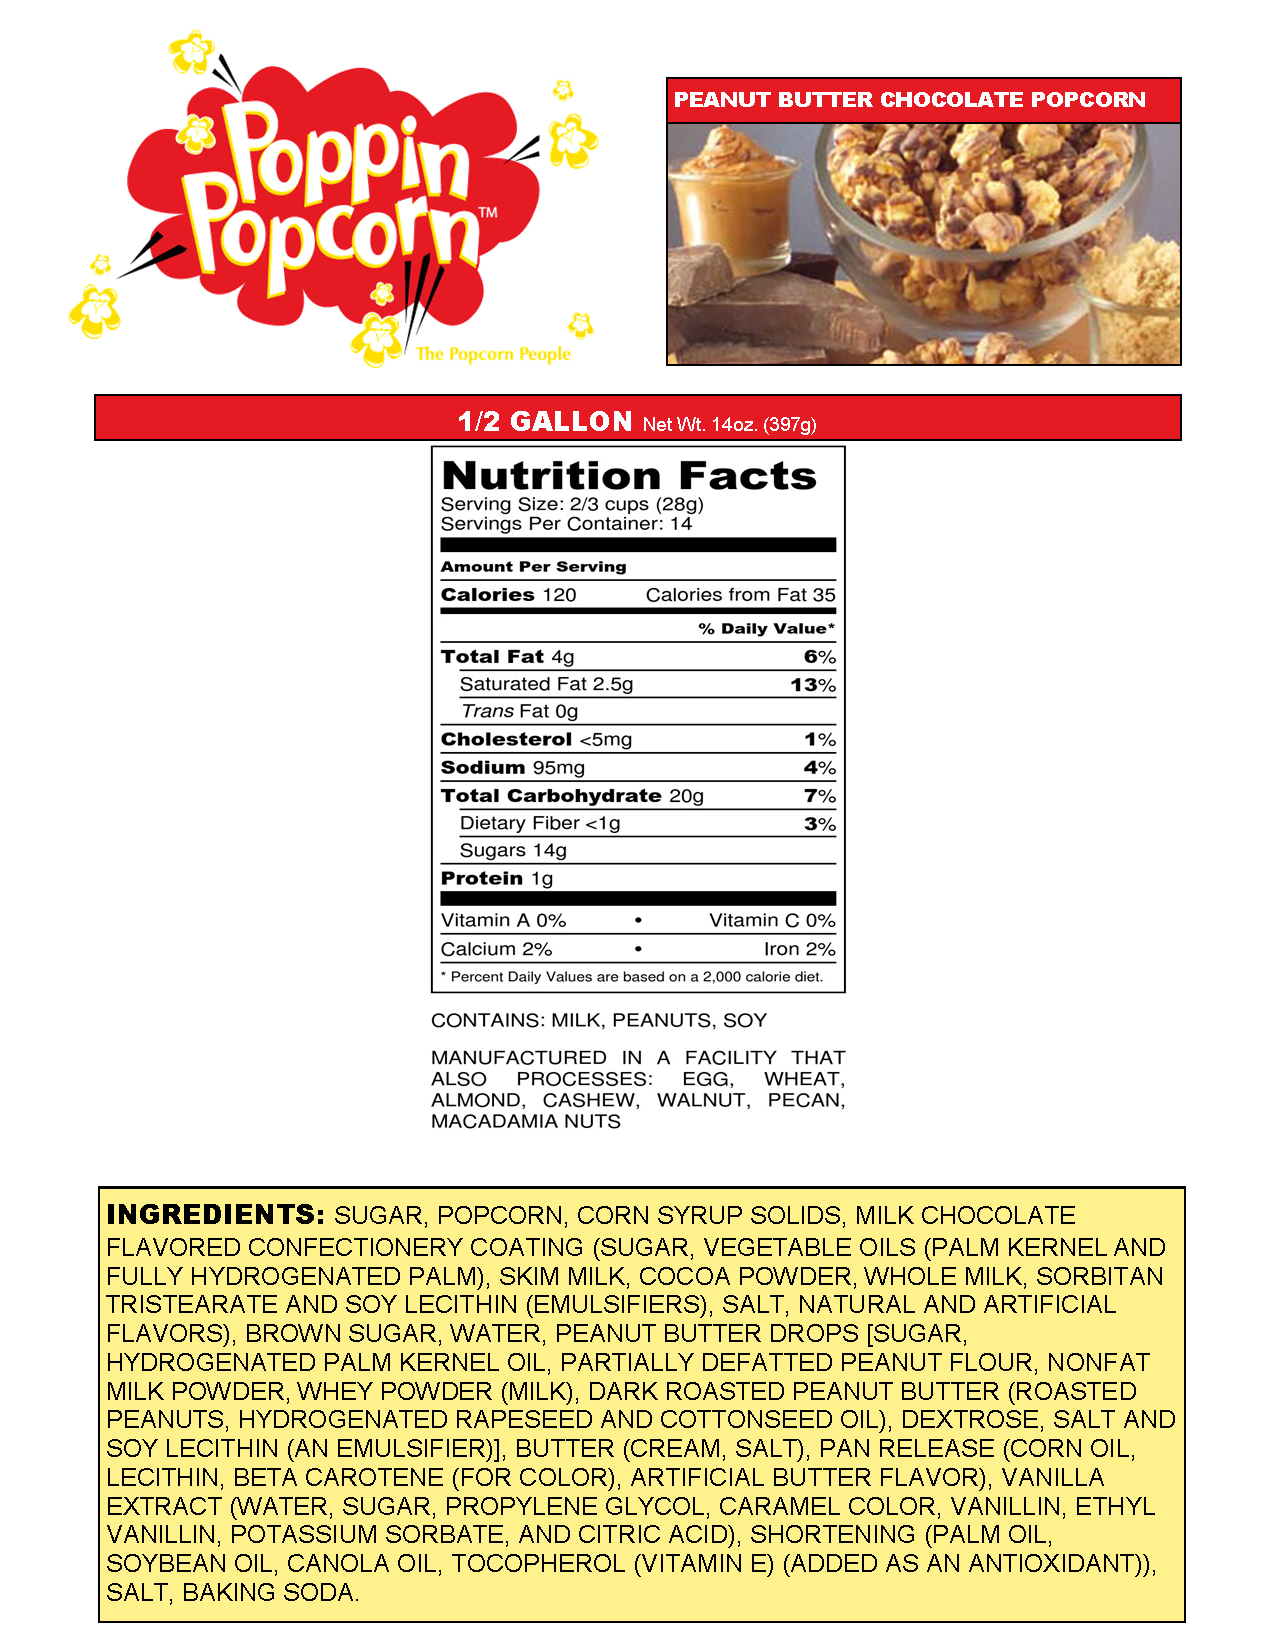 Peanut Butter Chocolate Web Nutritionals